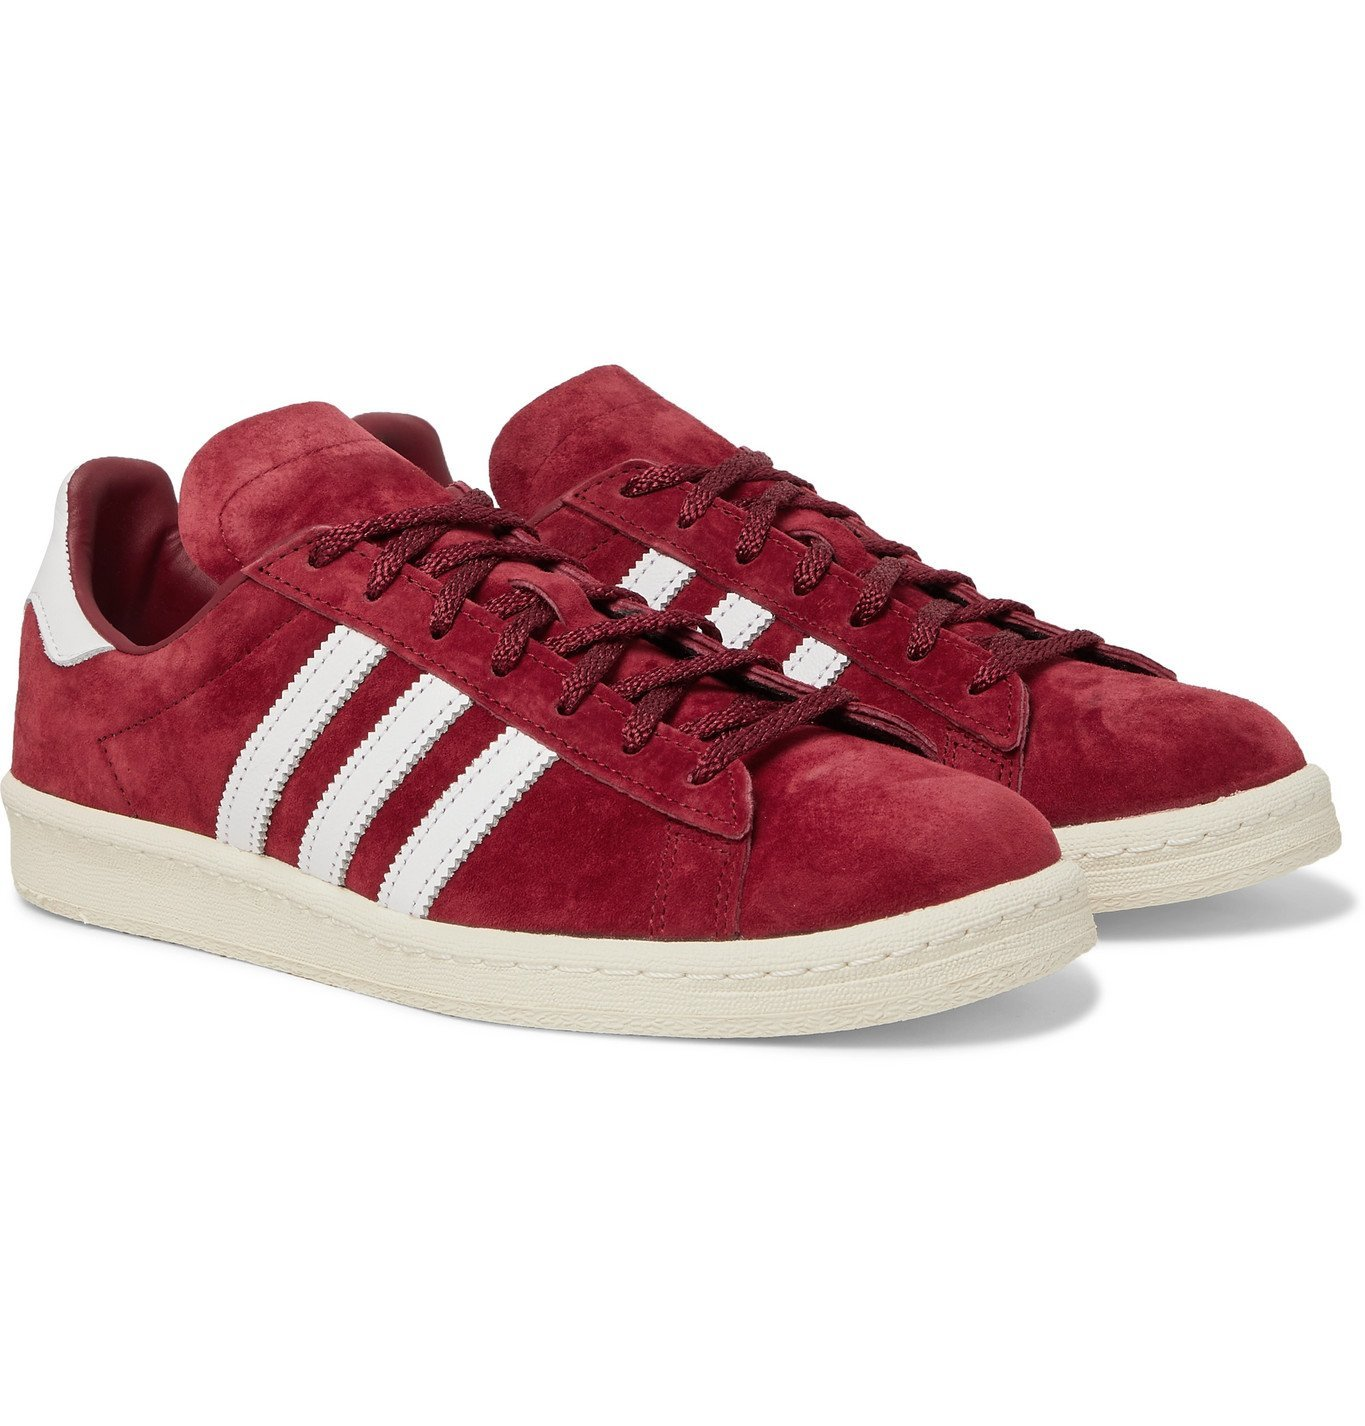 ADIDAS ORIGINALS - Campus 80s Leather-Trimmed Suede Sneakers - Burgundy